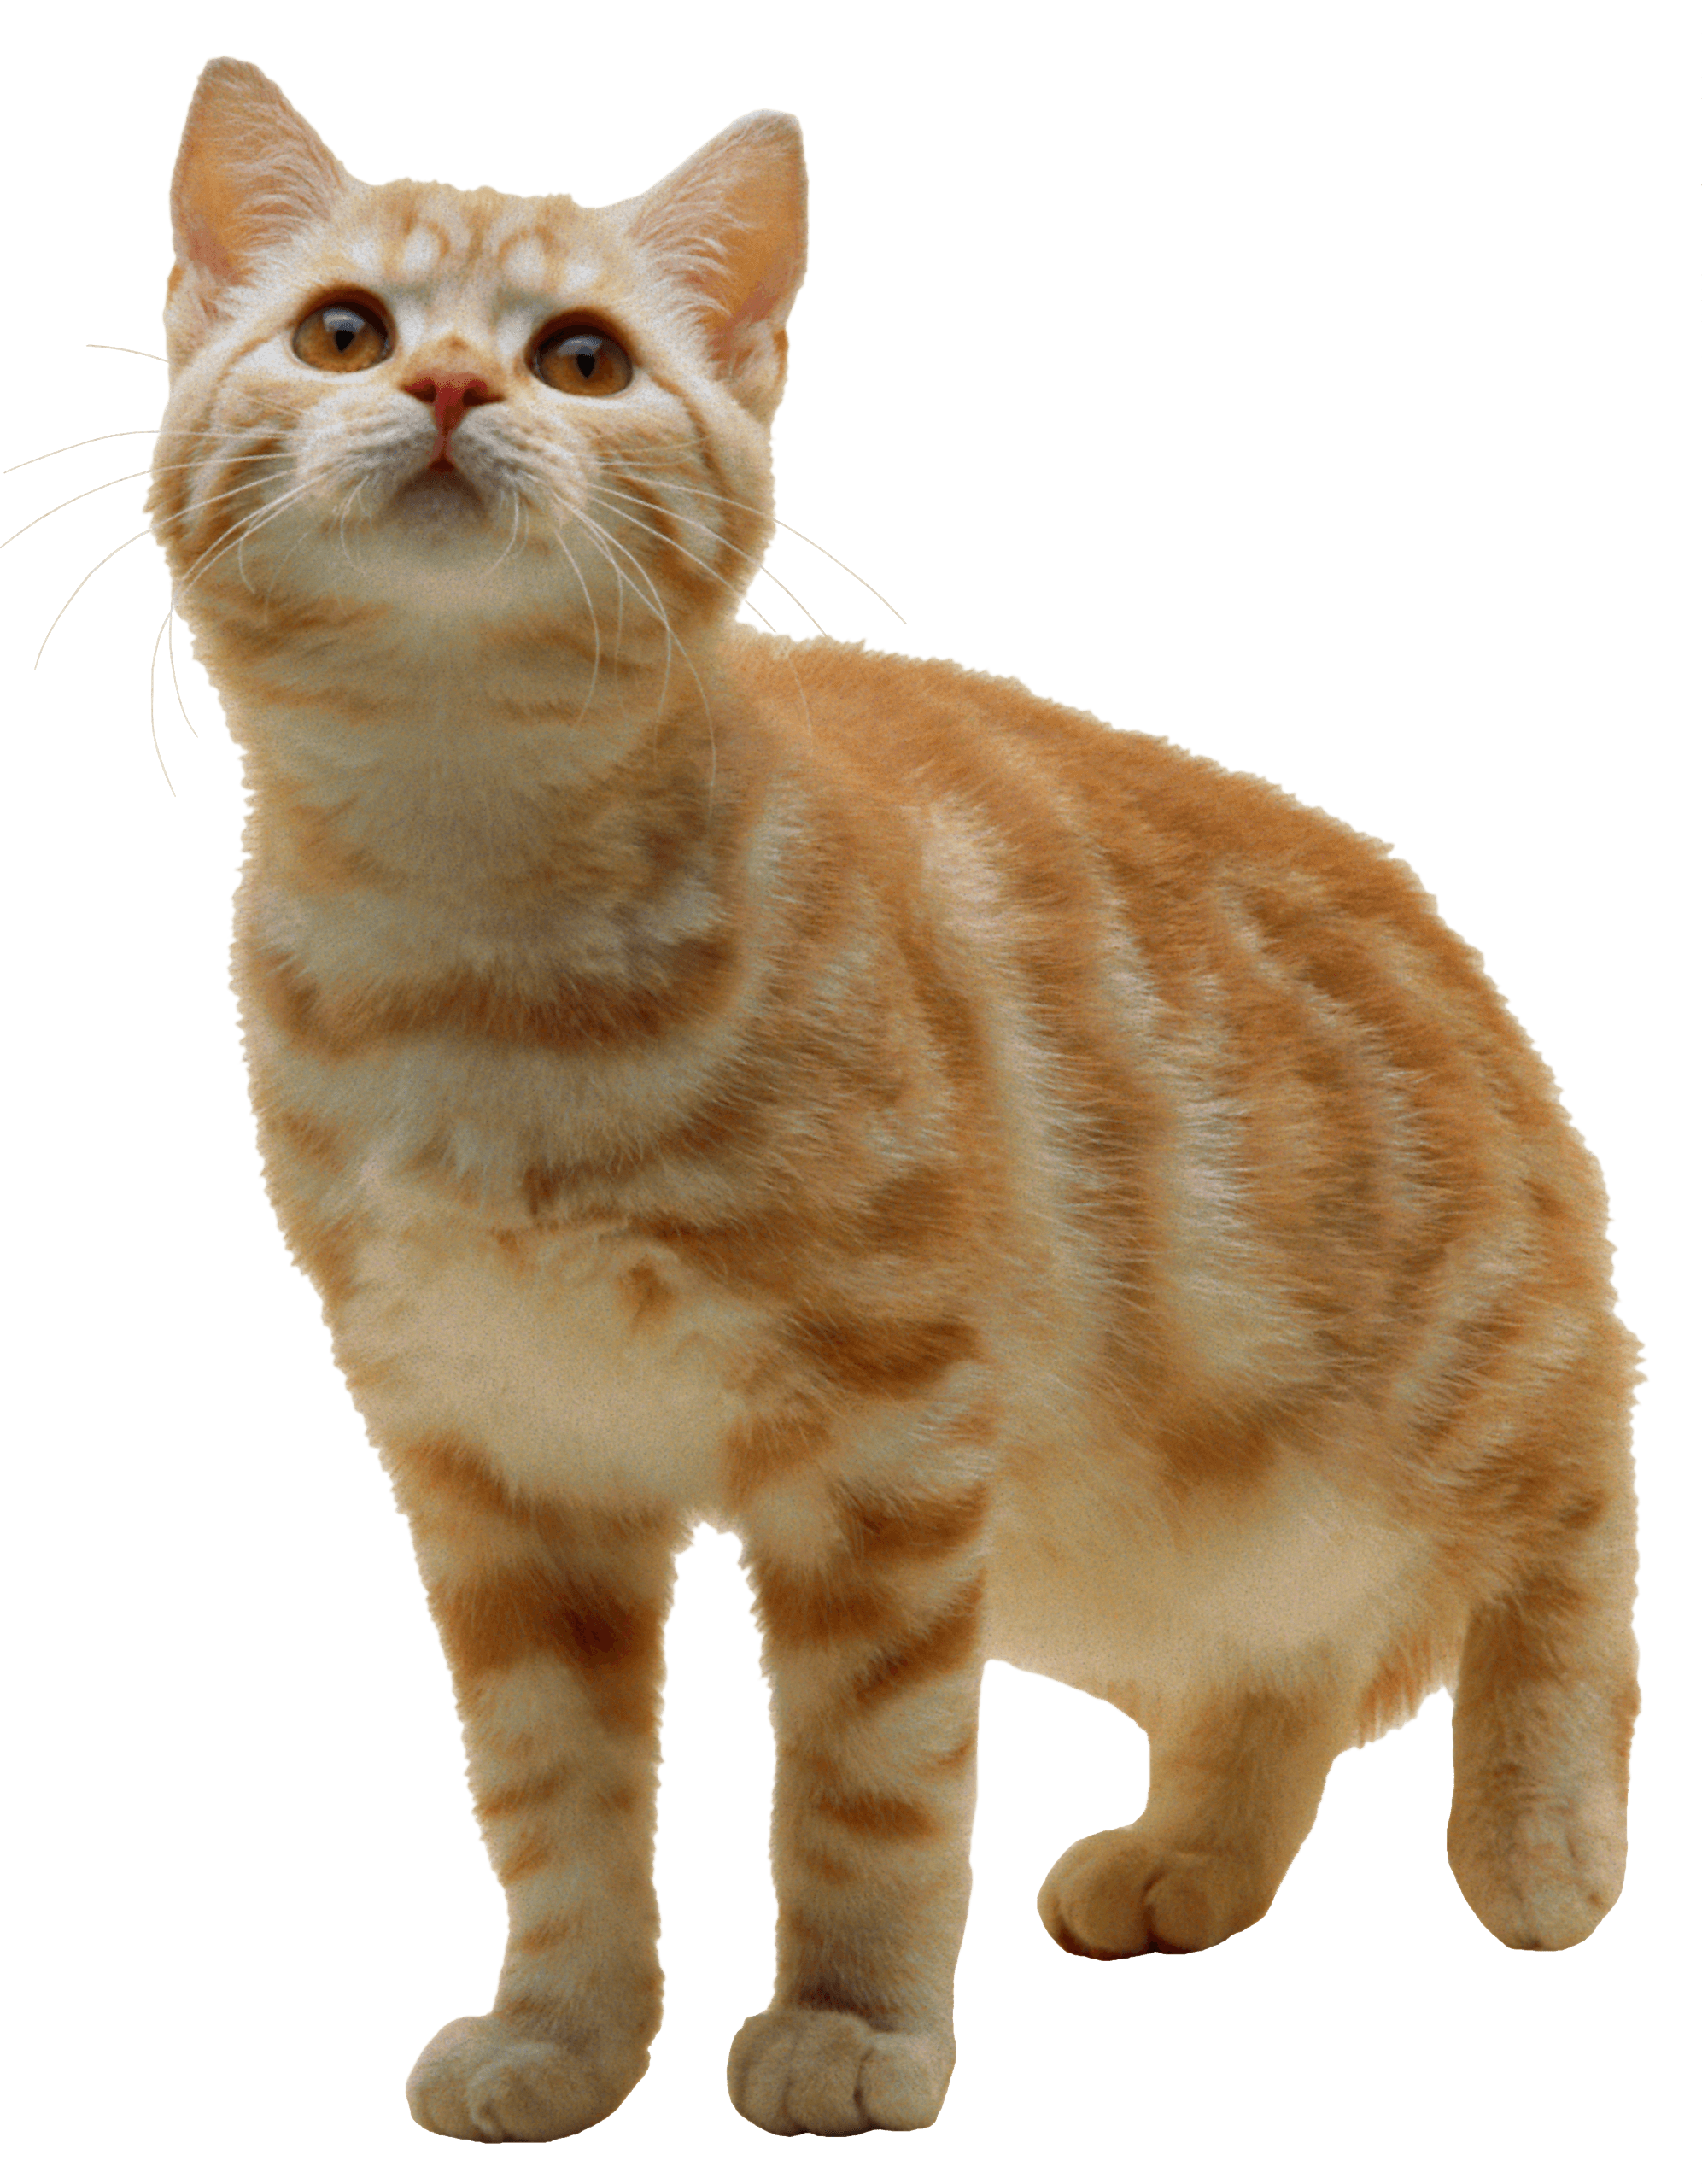 Kittens clipart 7 cat.  png image download